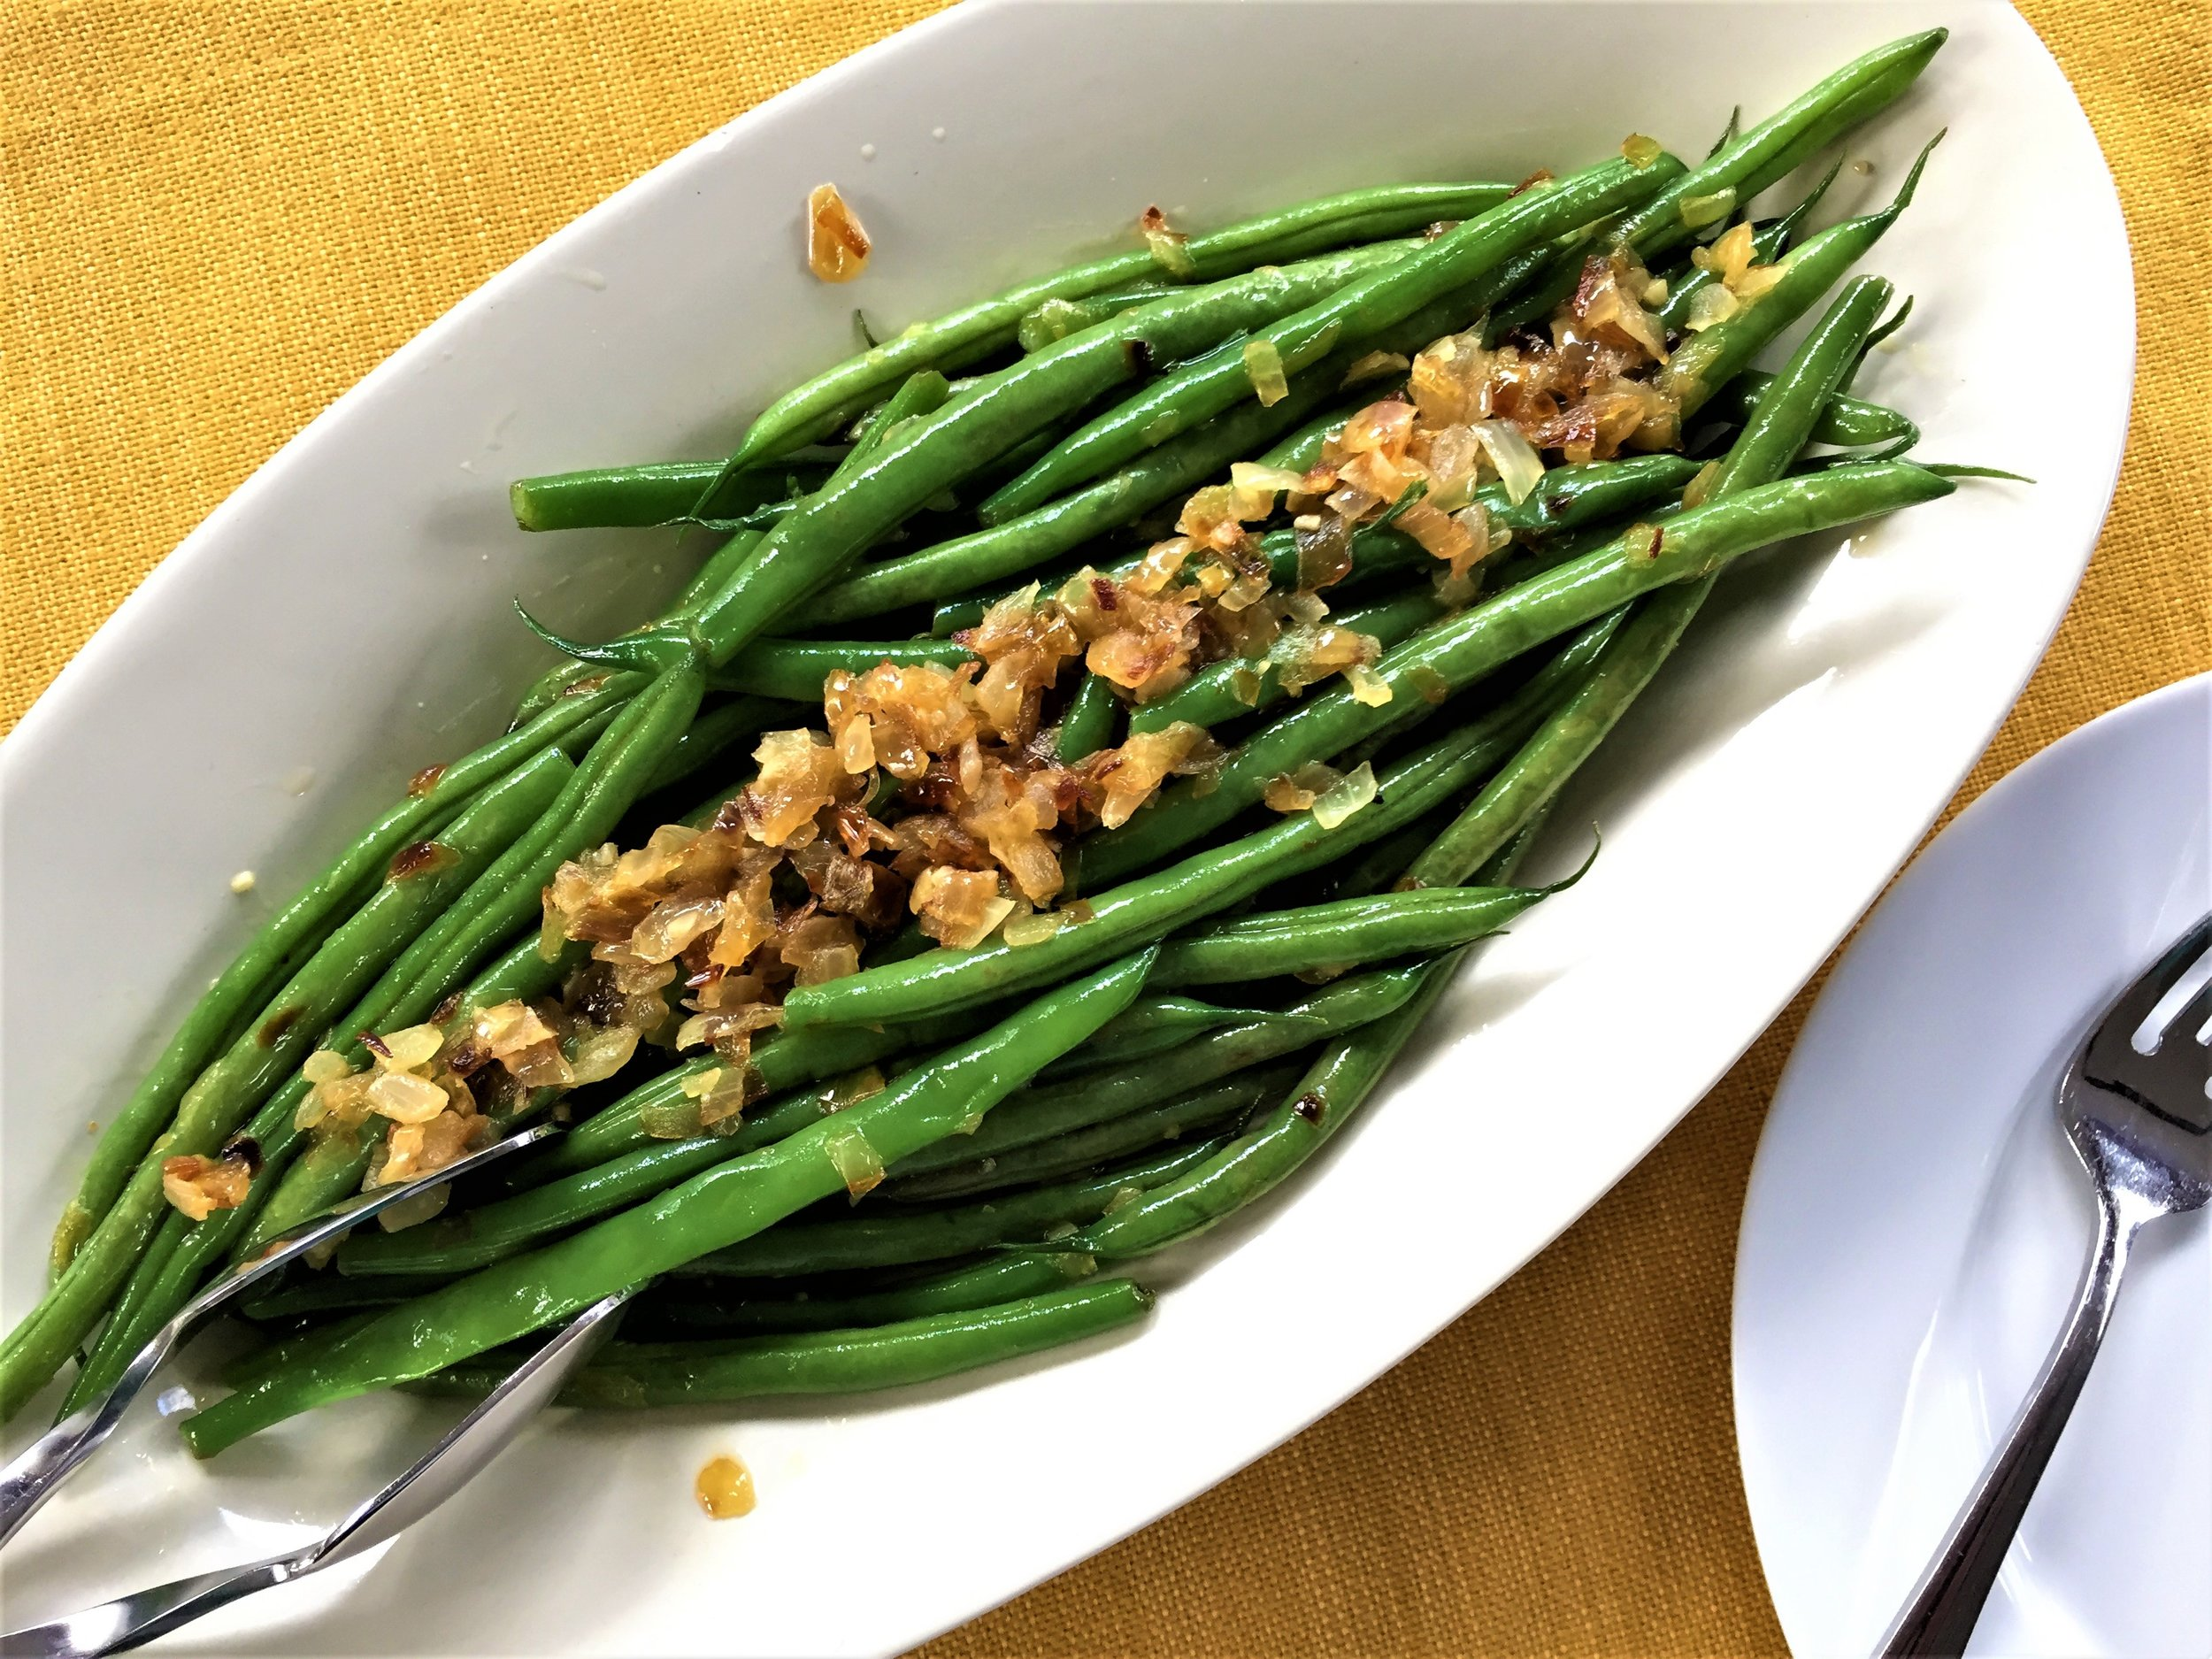 Buttery Green Beans with Garlic and Onions, made in the Adventure Kitchen.